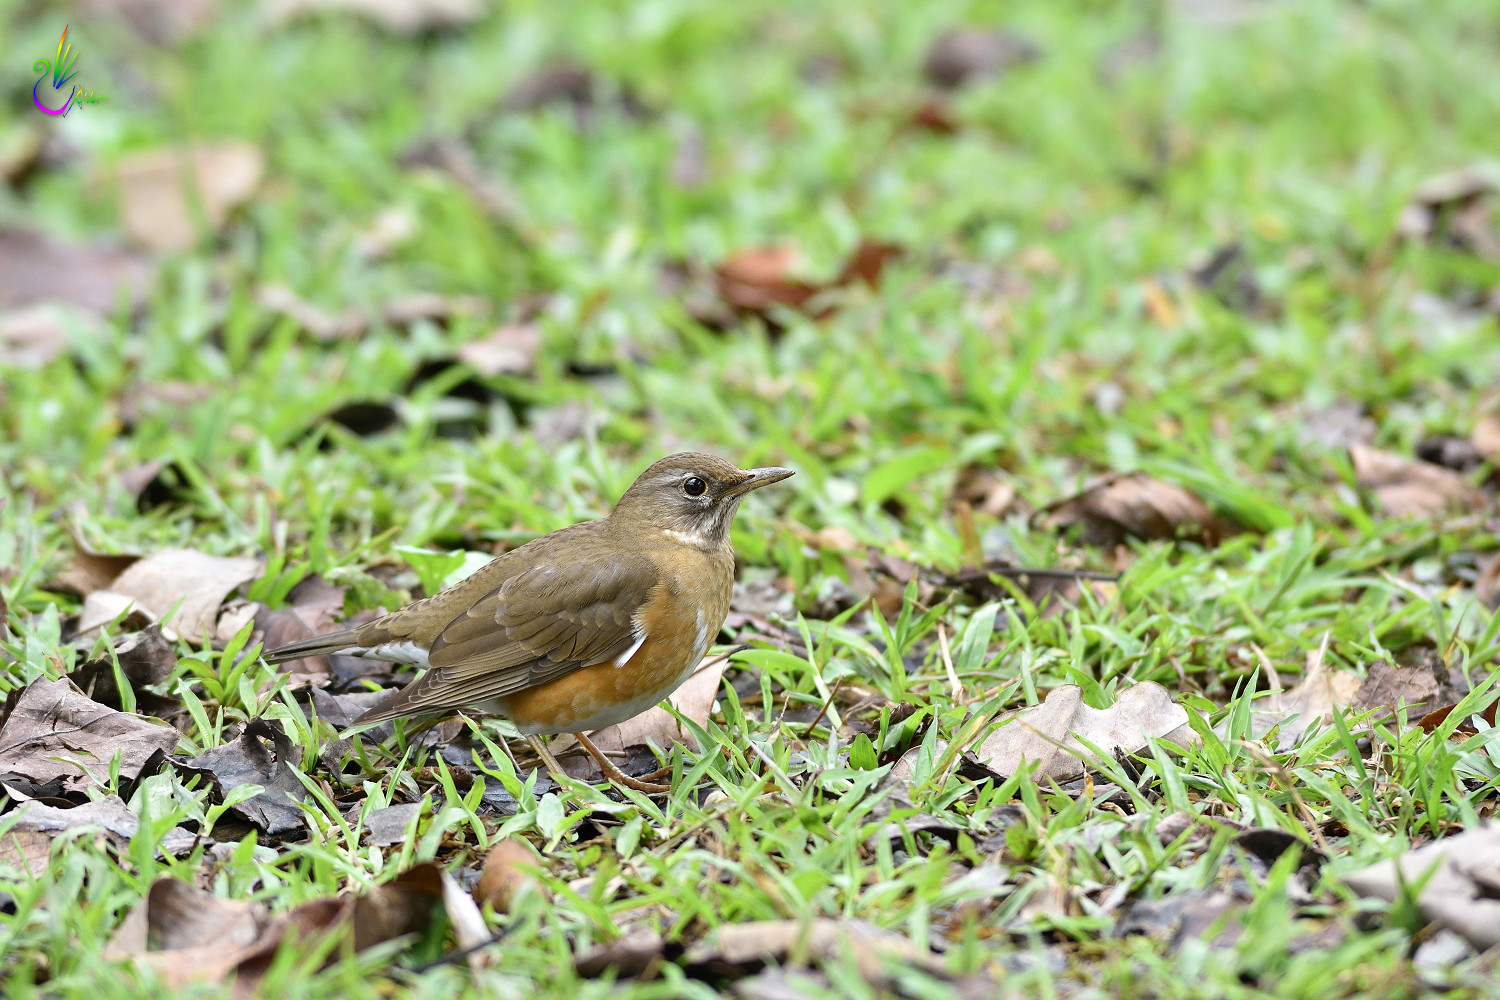 Brown_Thrush_6588